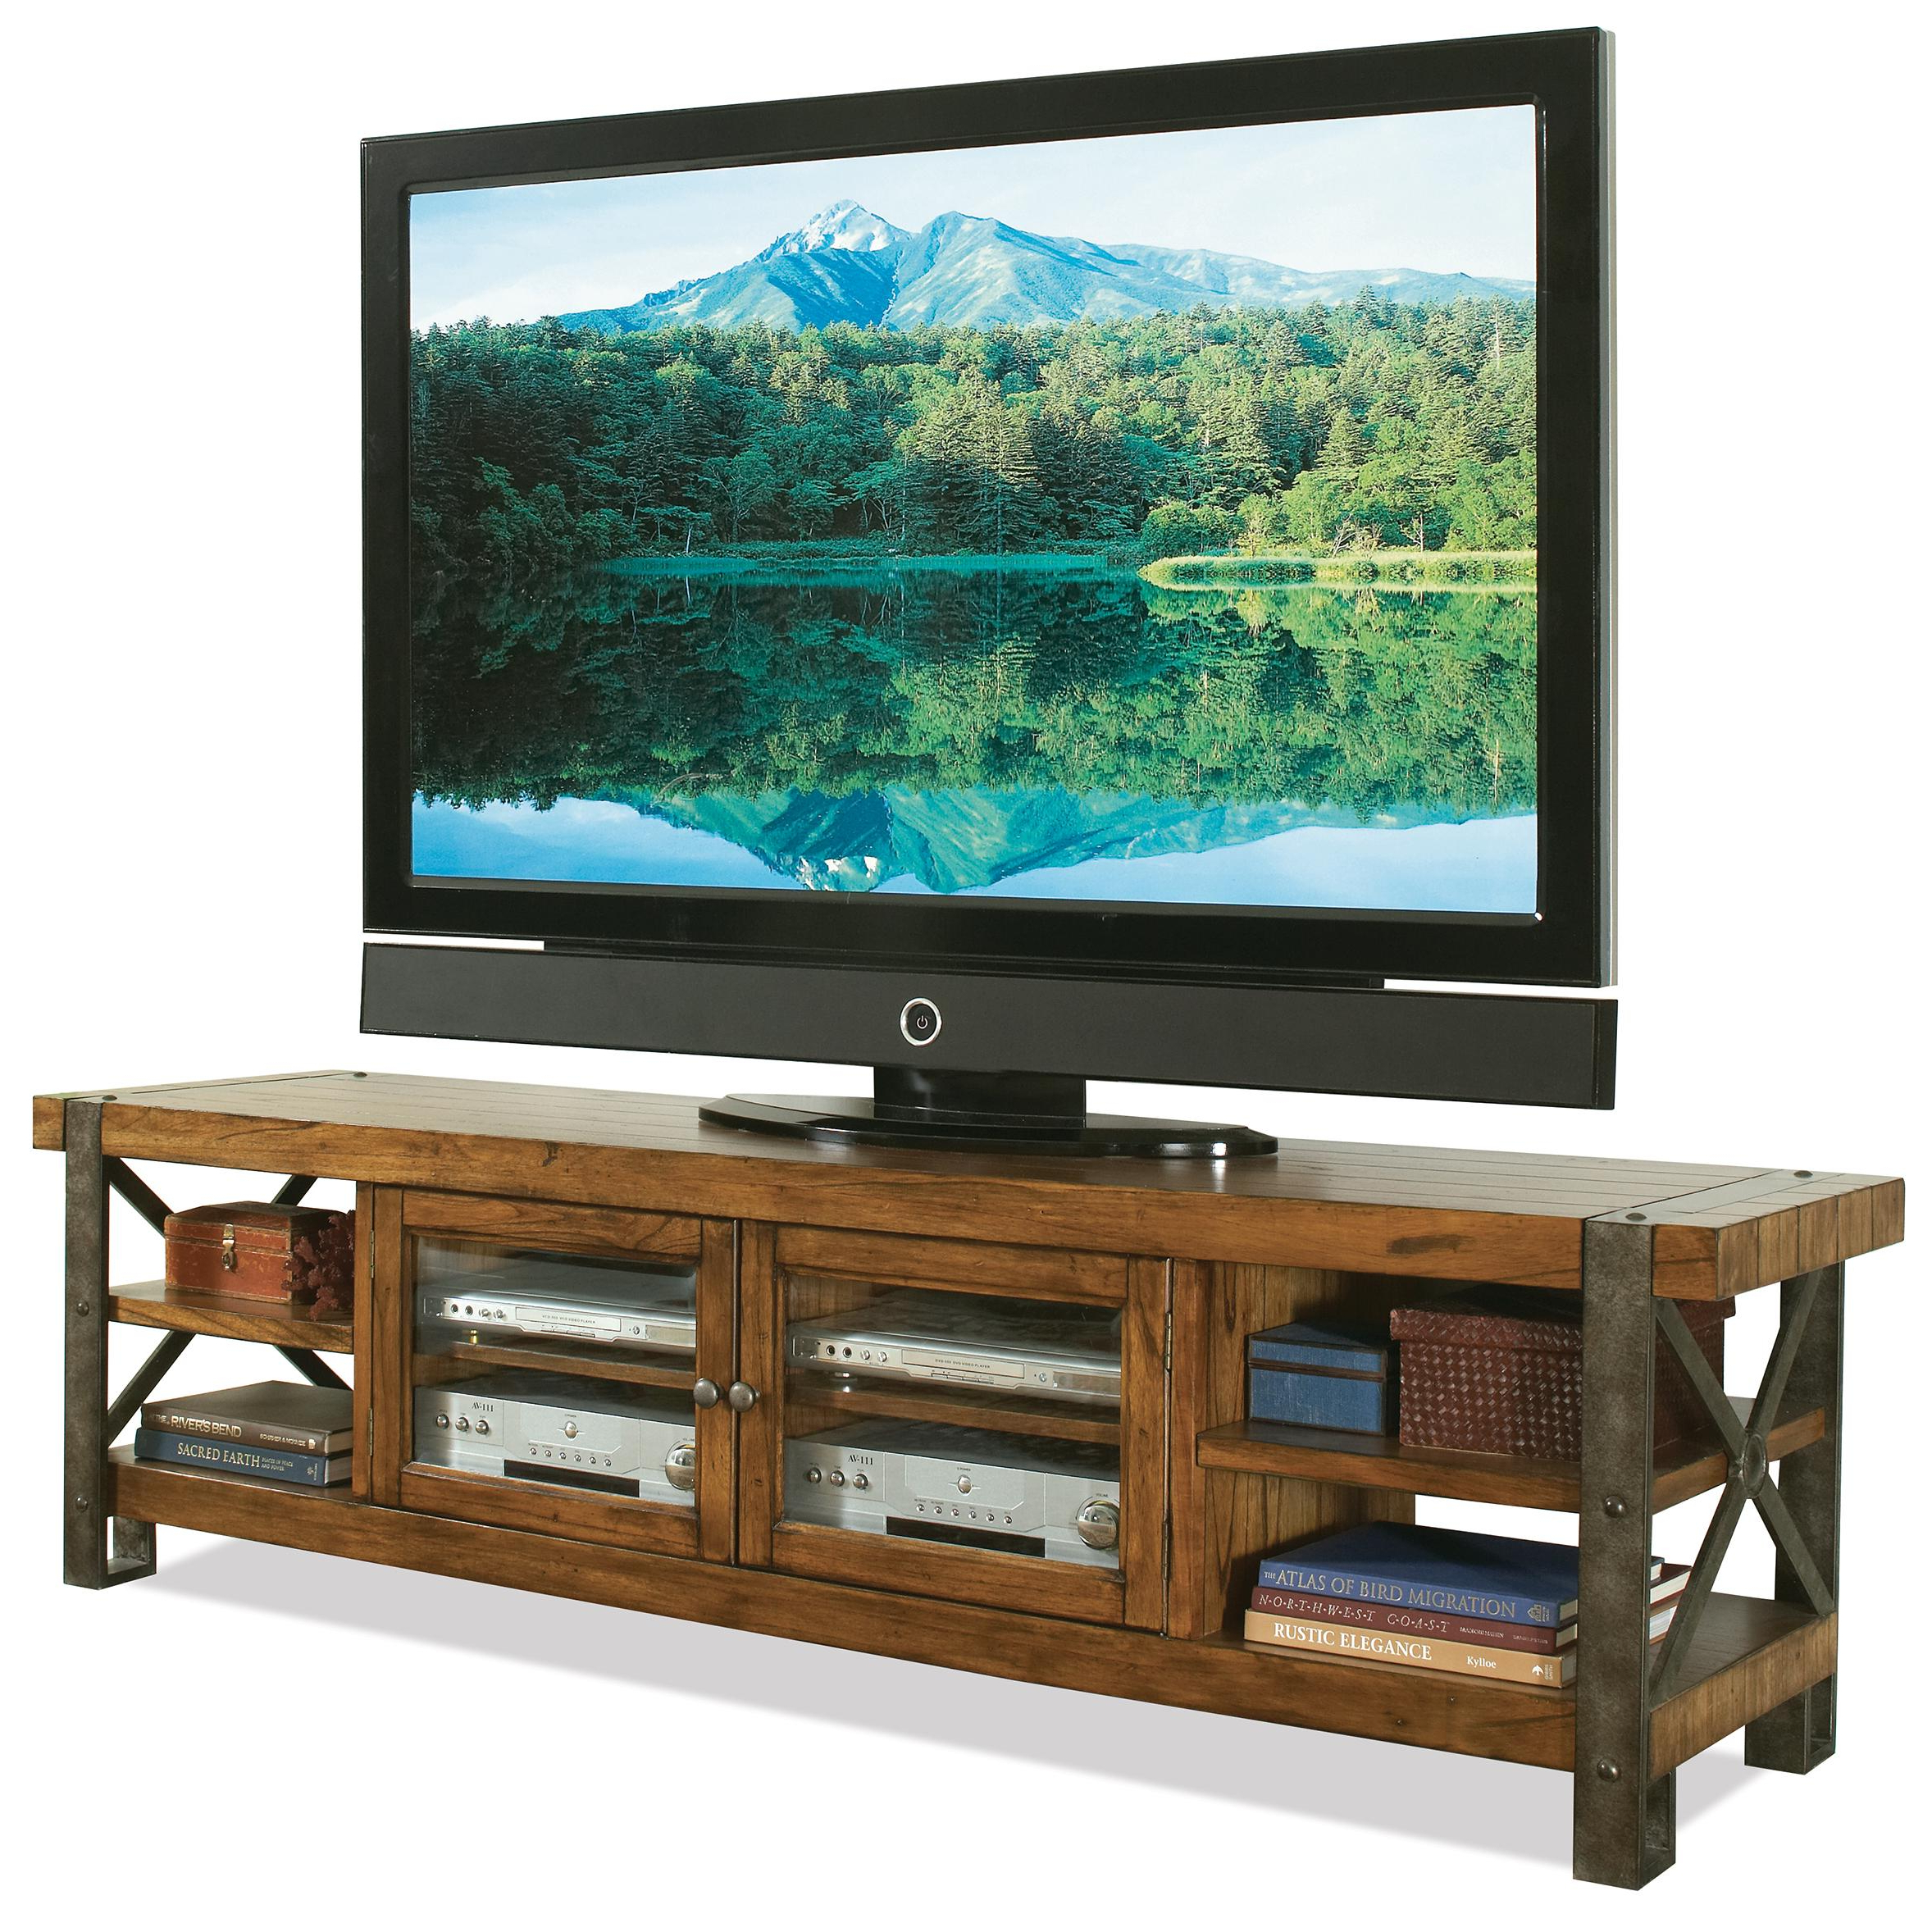 Trendy 80 Inch Tv Stands Intended For Riverside Furniture Sierra 3442 Rustic 80 In Tv Console W/ Glass (View 18 of 20)